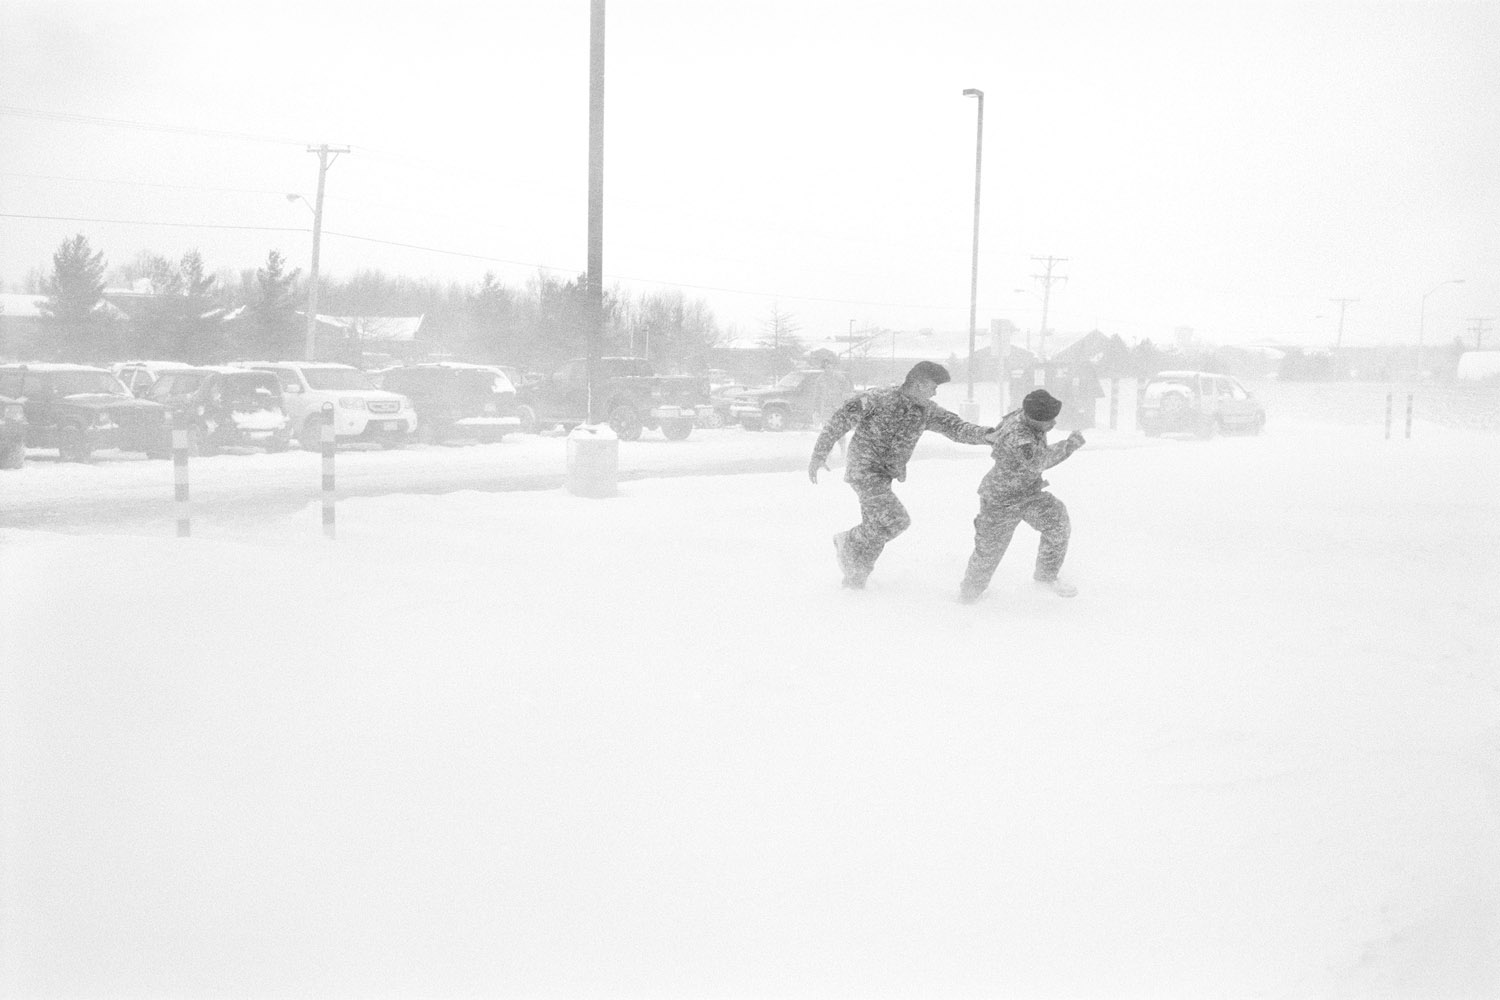 Two soldiers play in a blizzard at Fort Drum, N.Y. January 2010.